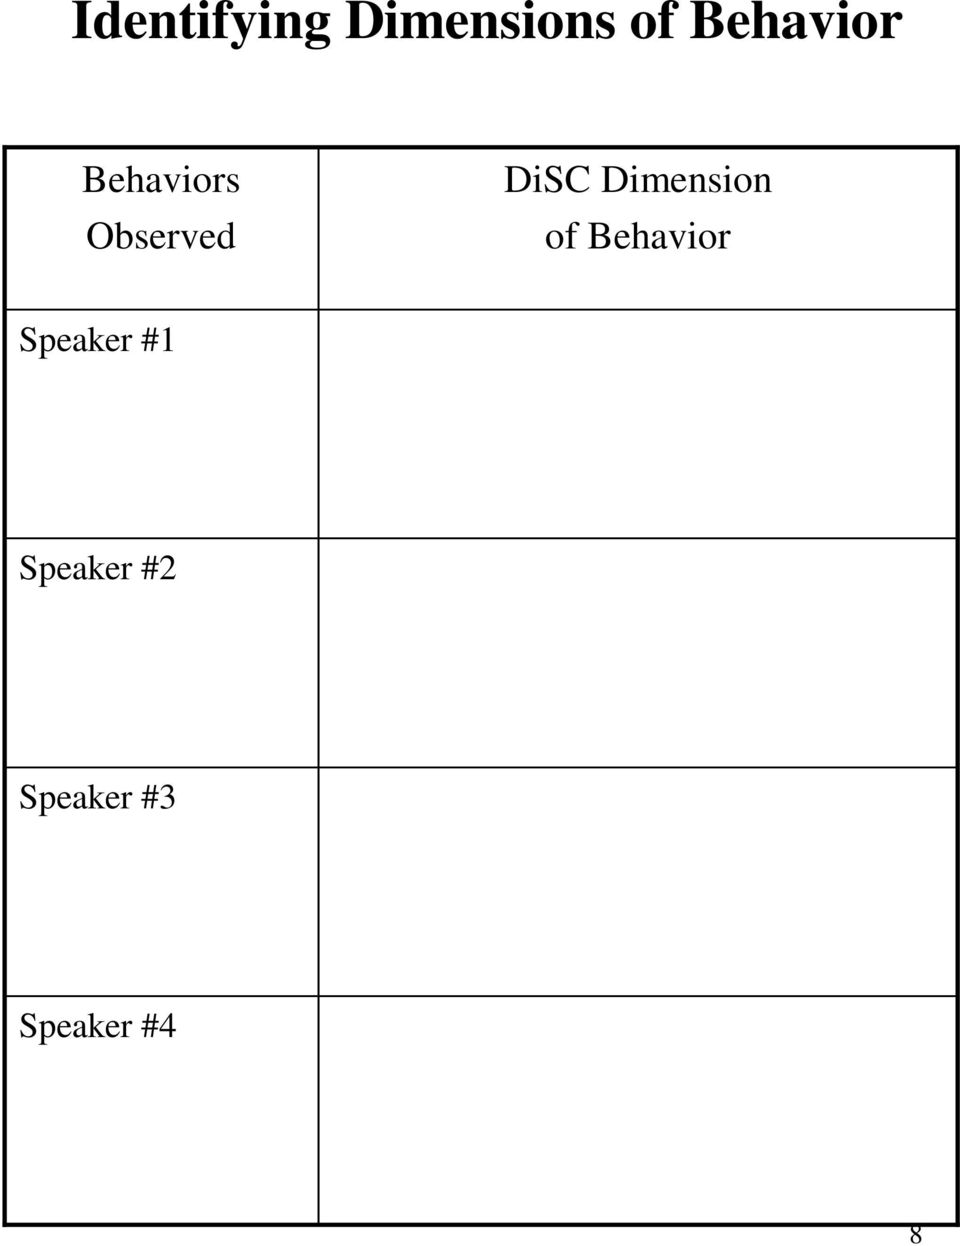 DiSC Dimension of Behavior